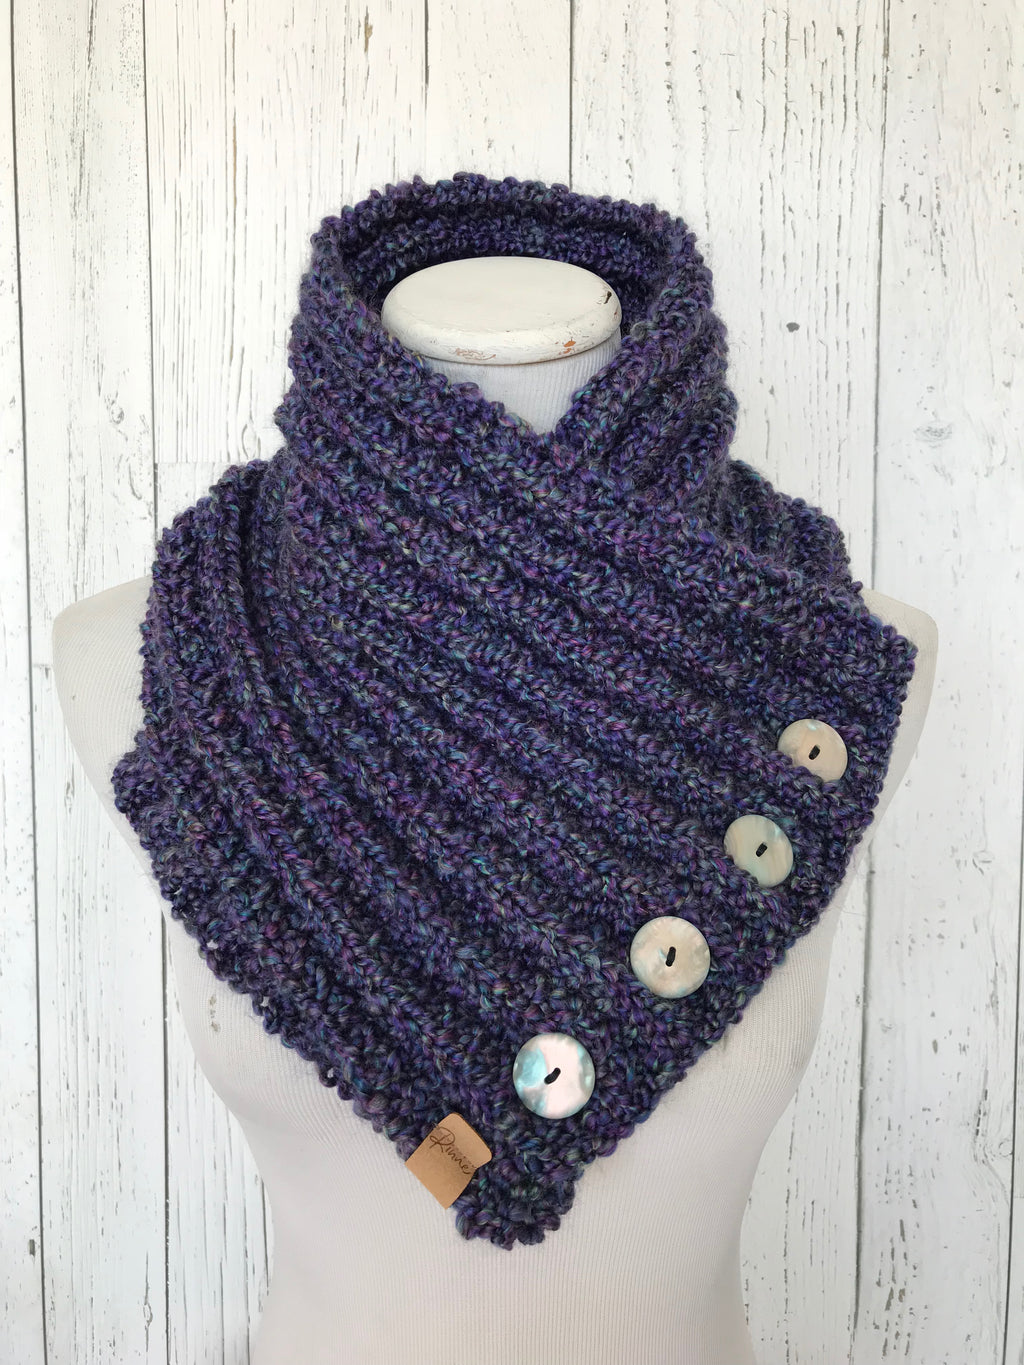 Classic Knit Button Cowl in heathered blue and purple, with shell buttons